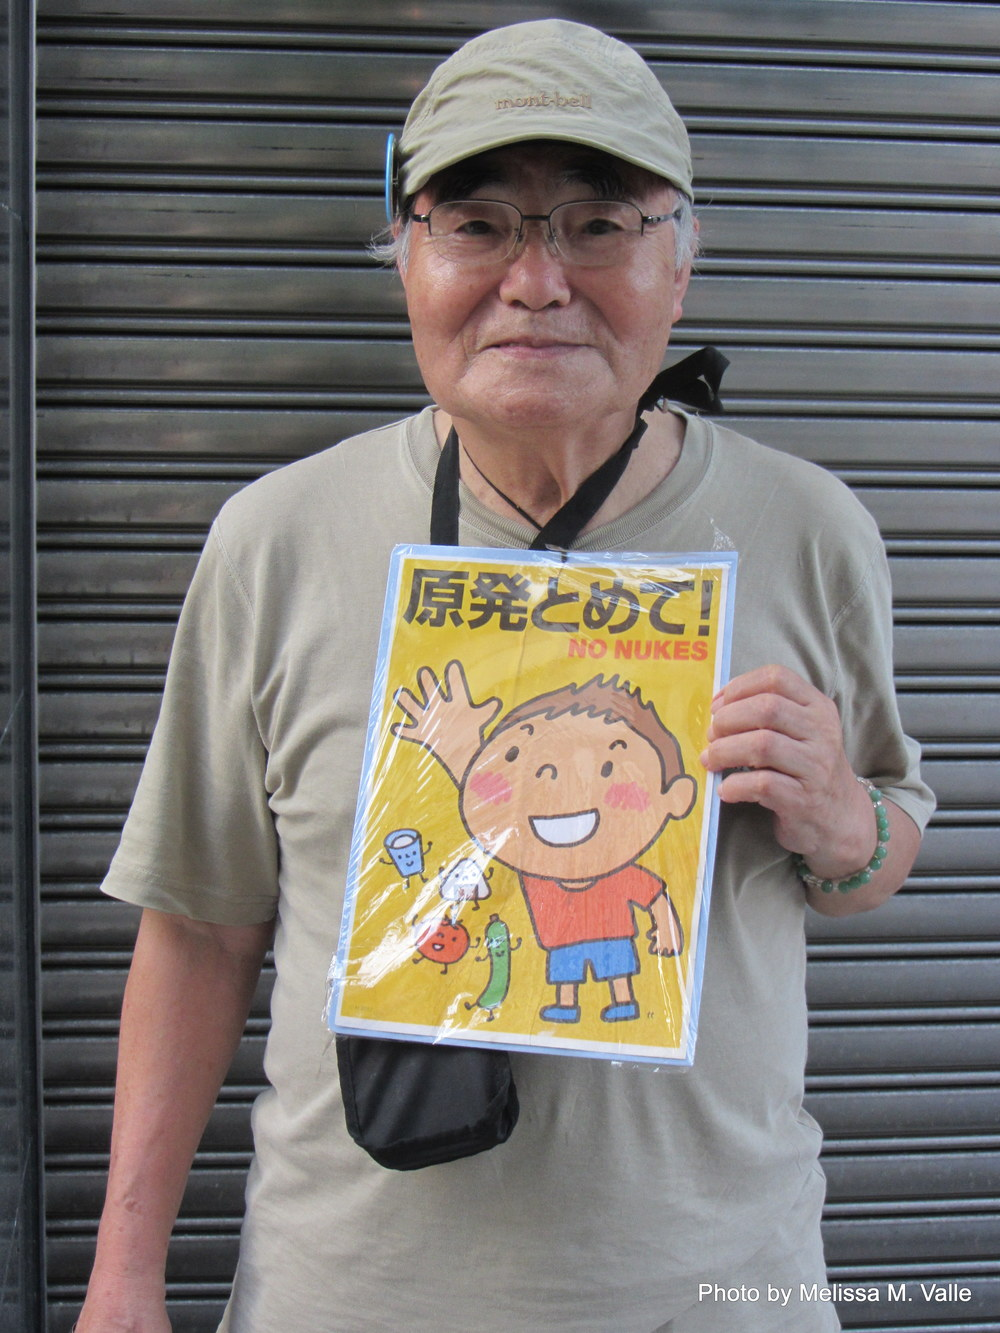 Anti-nukes protester. He and his sign are oddly super adorable given the circumstances.